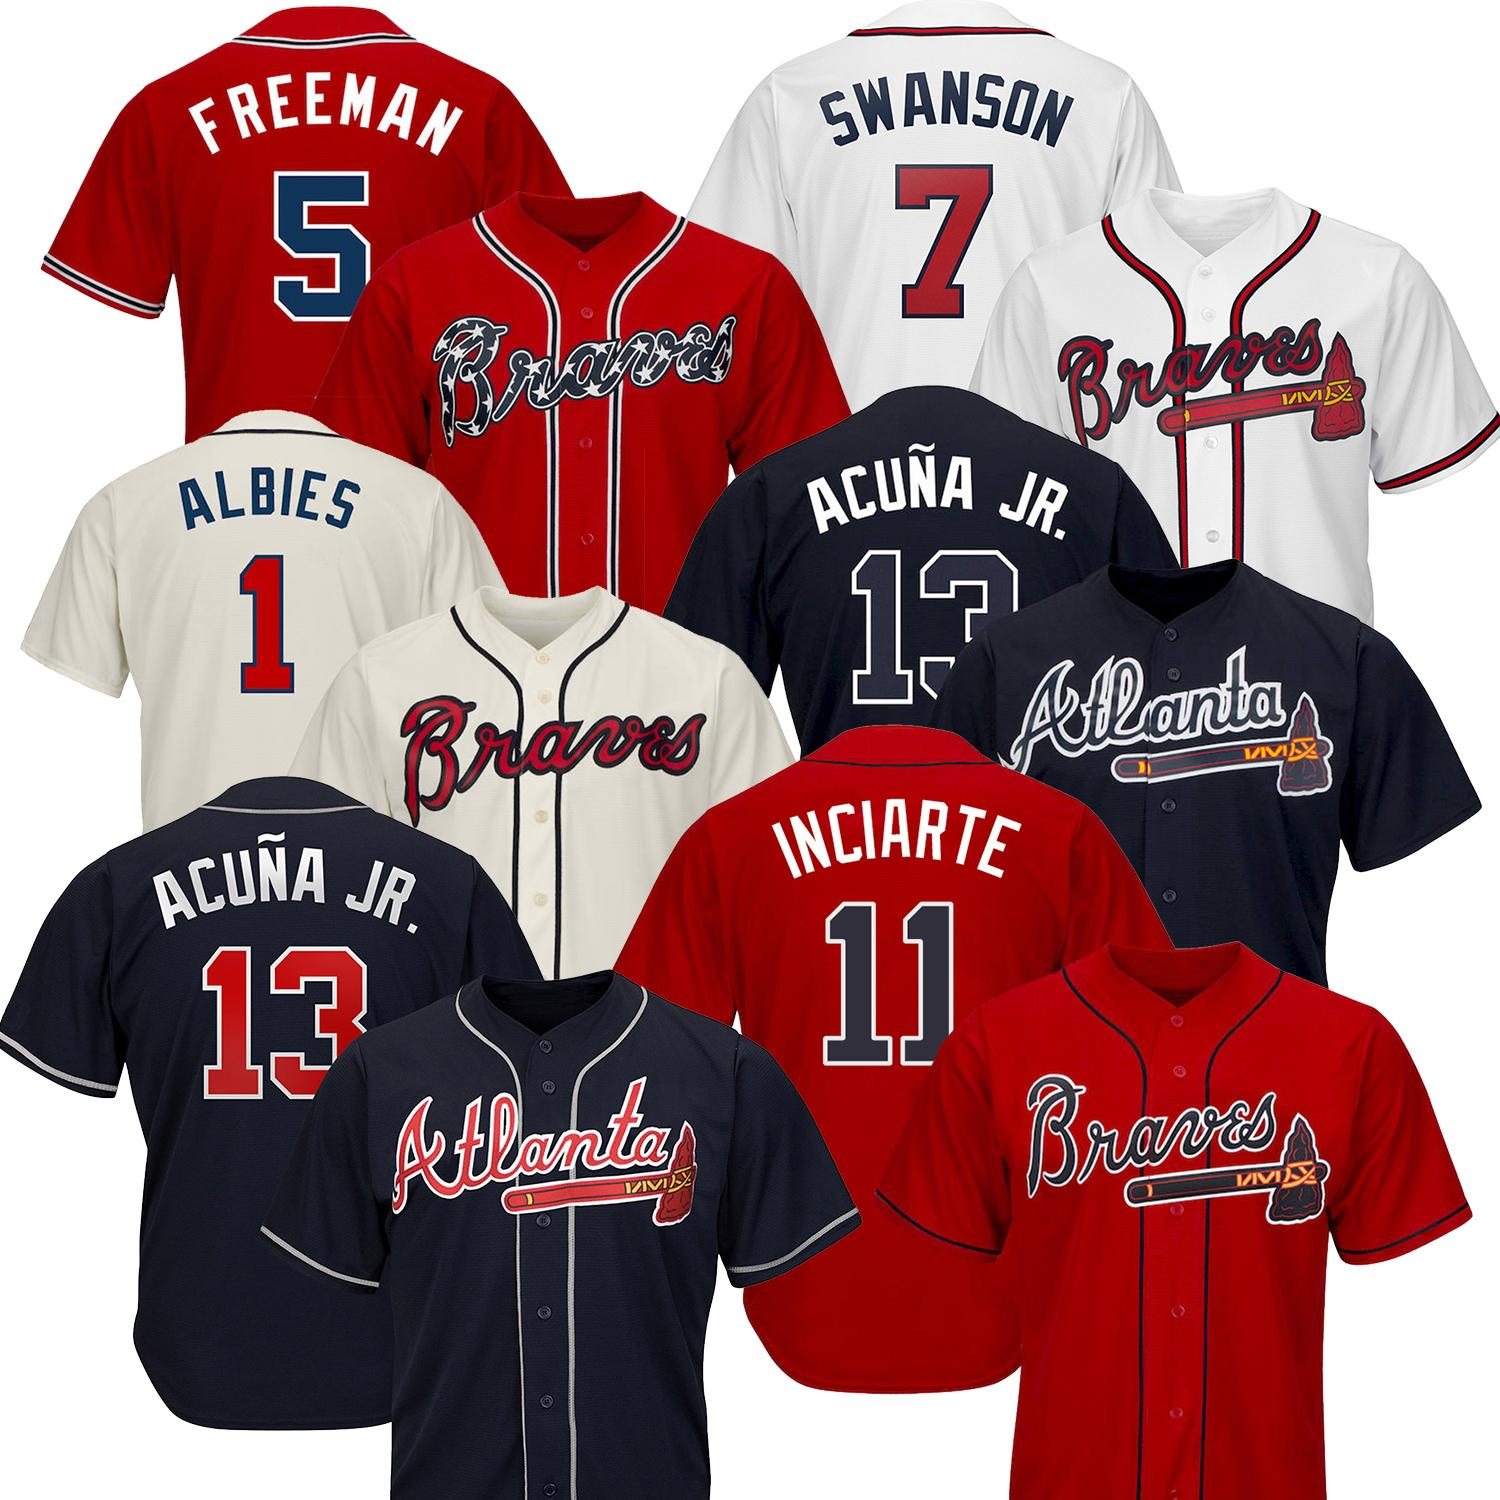 2019 2019 Men S Atlanta Braves Jersey Baseball Jerseys Ronald Acuna Jr. Jr Ozzie  Albies Freddie Freeman Dansby Swanson Chipper Jones Size S XXXL From ... 8ef3ca188